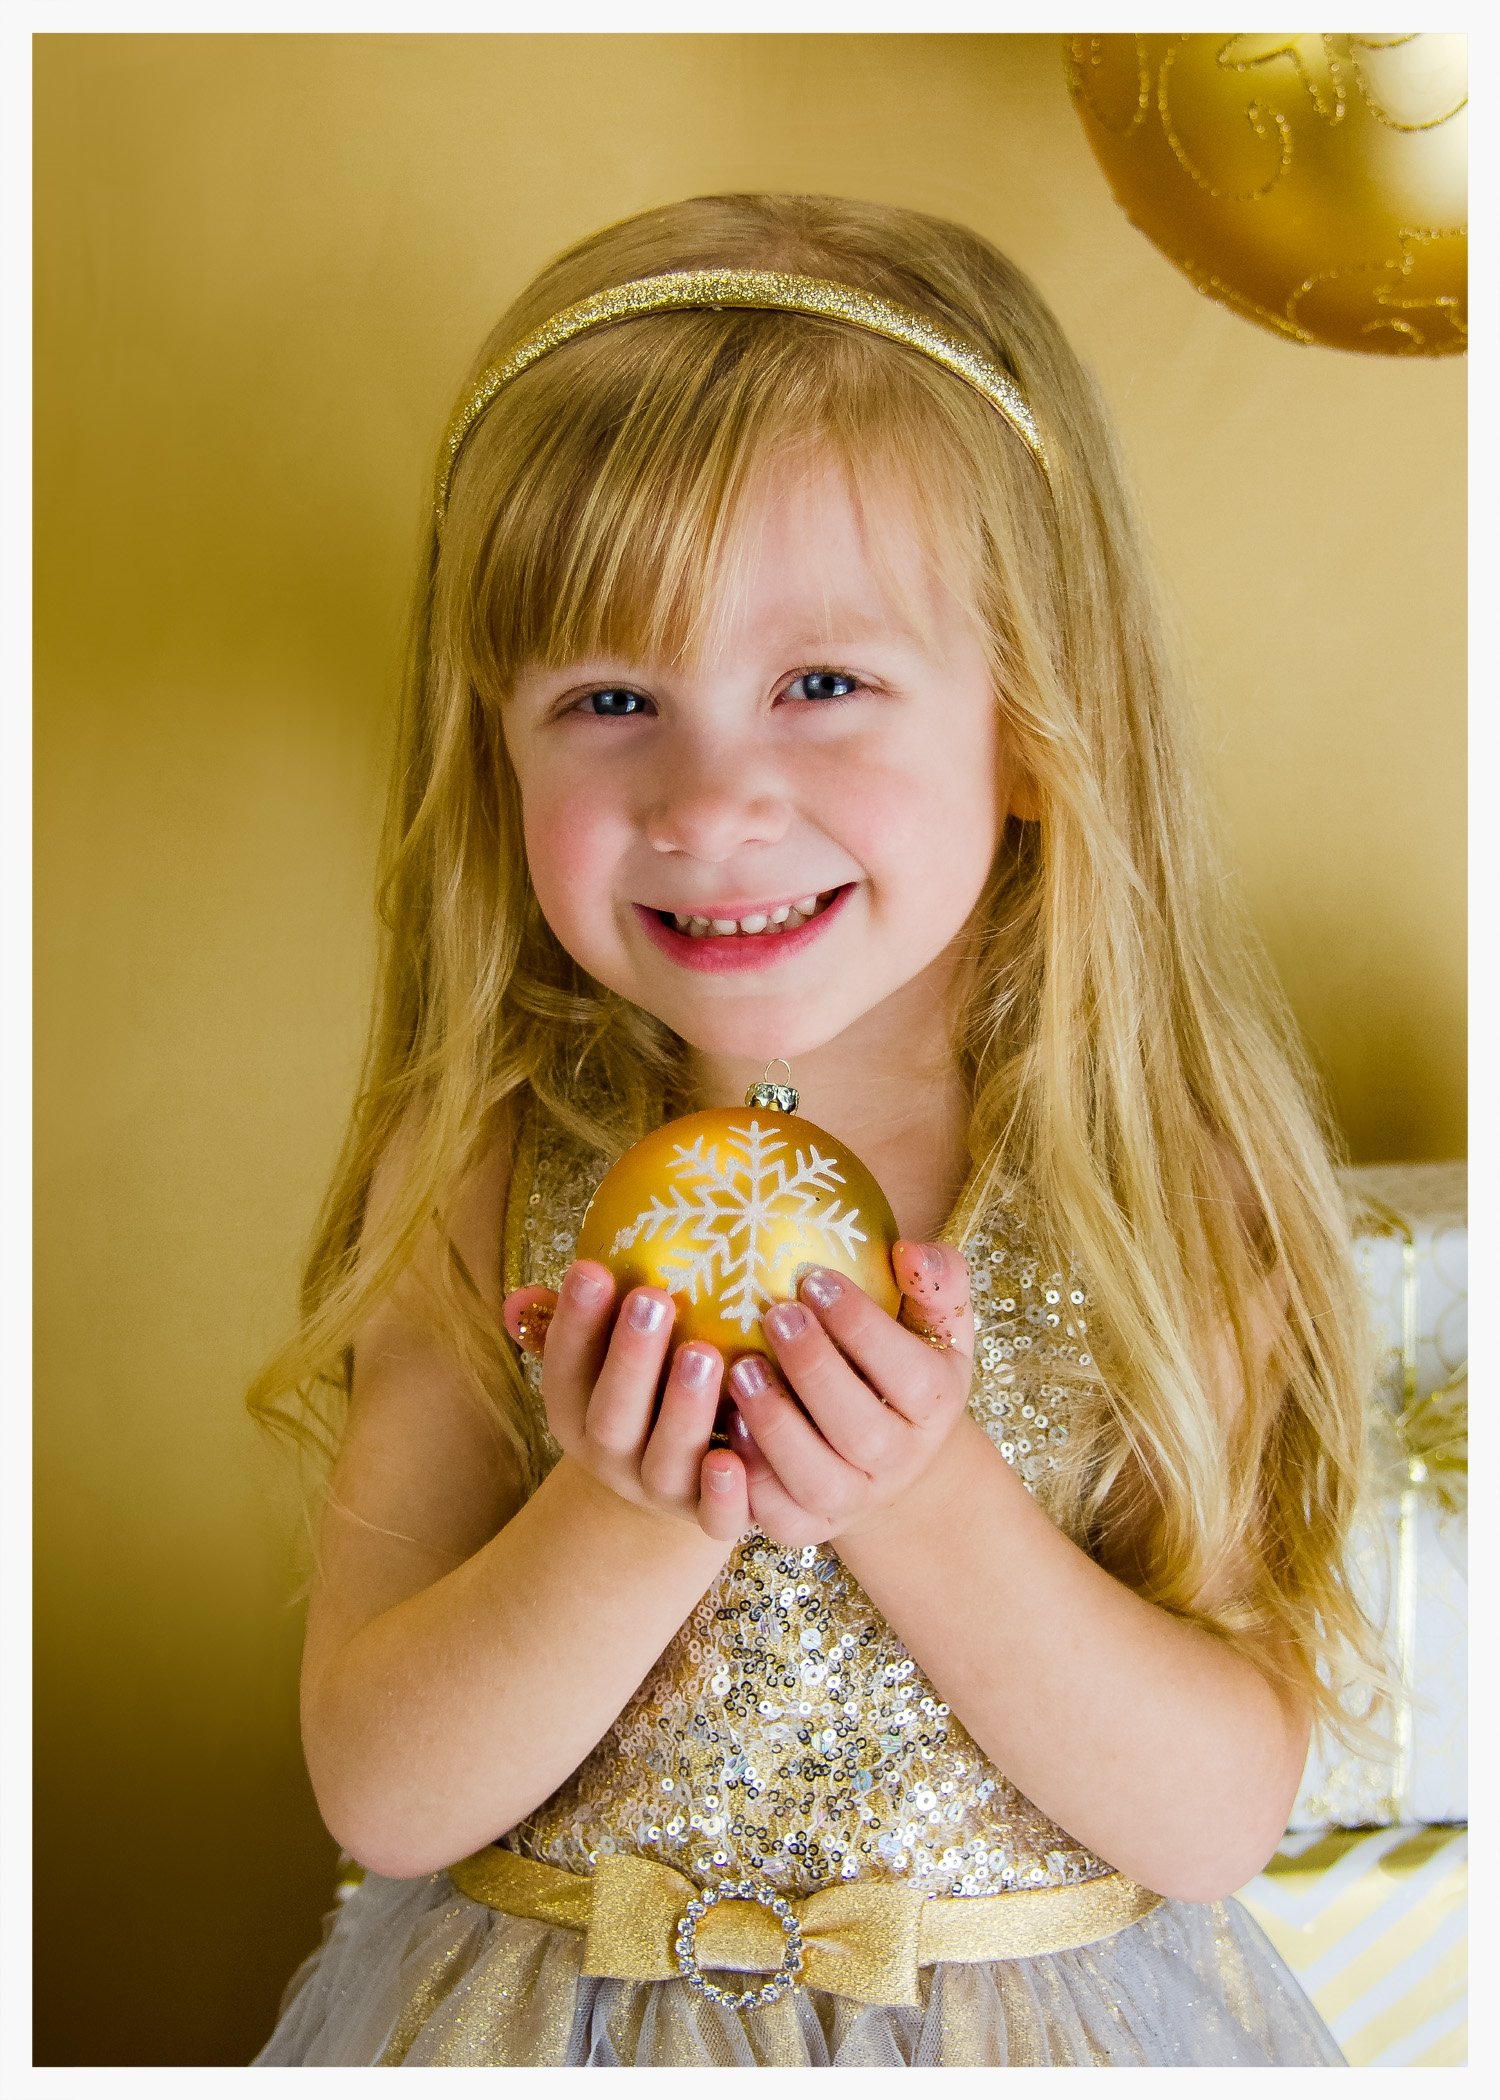 A GLITTER SESSION: WHO SPARKLES MORE? THOSE SMILING EYES AND BEAUTIFUL SMILE I THINK!